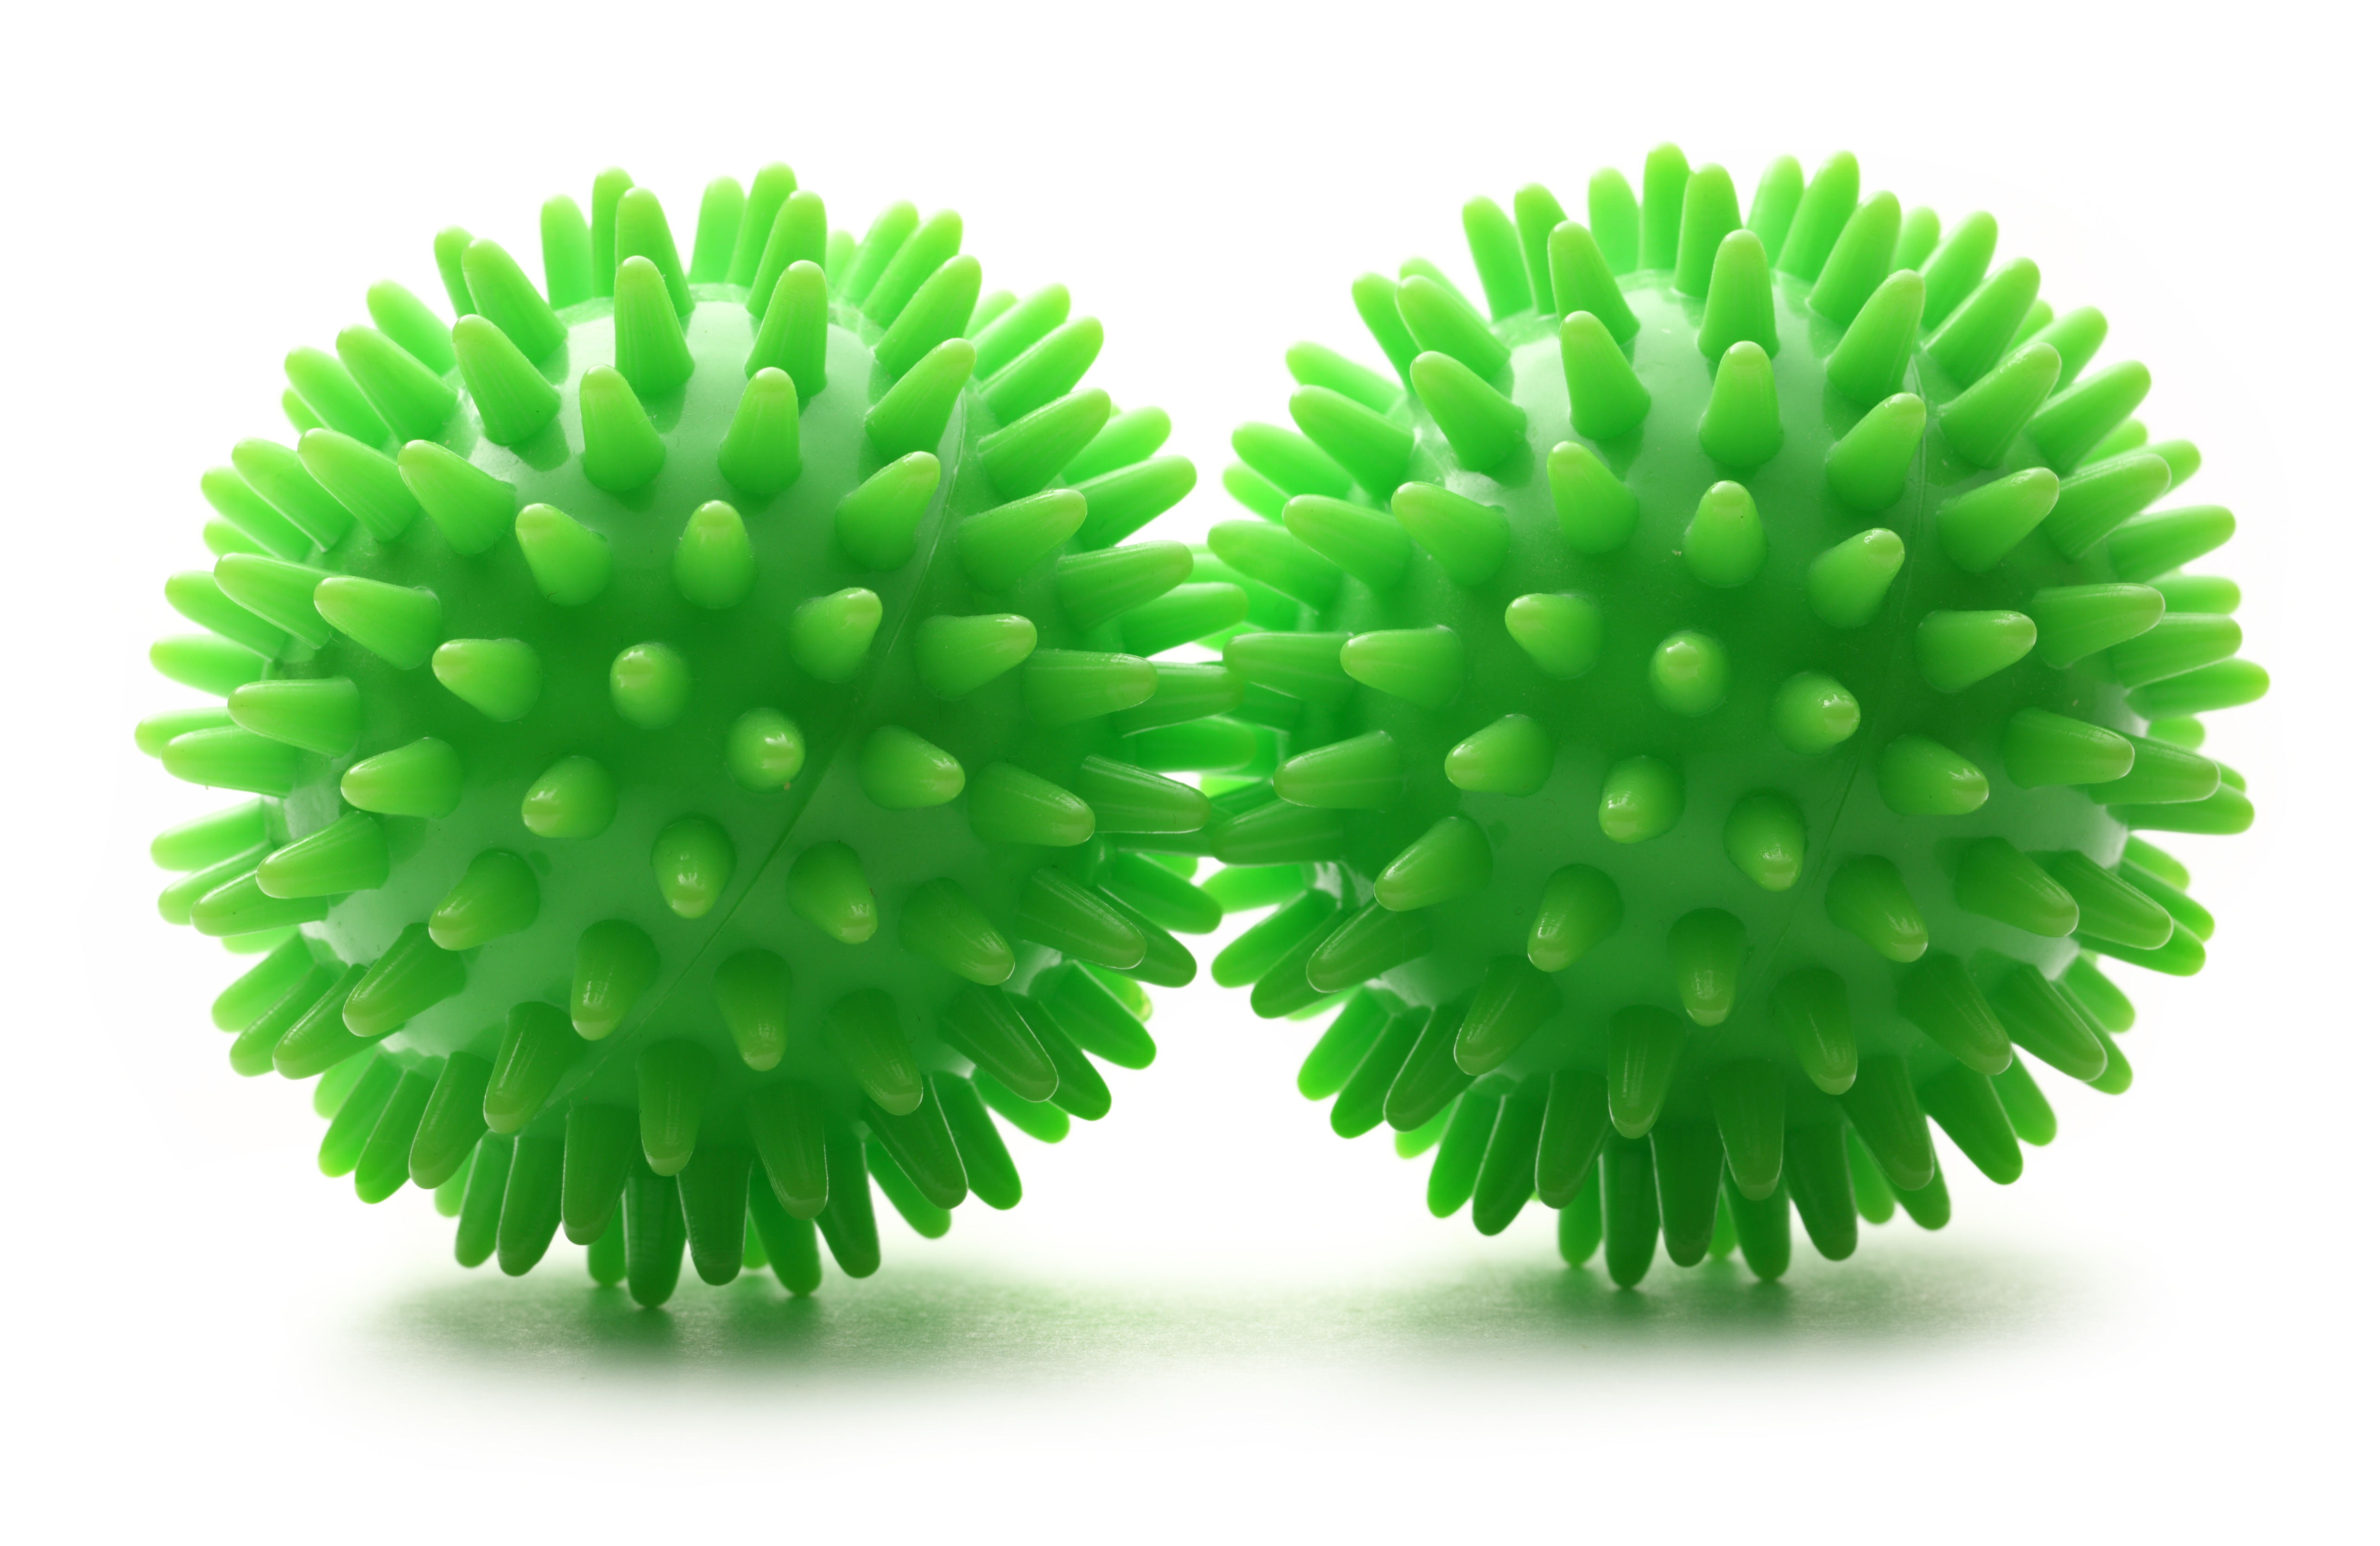 Massage balls, therapy balls, self massage, yoga for improved posture